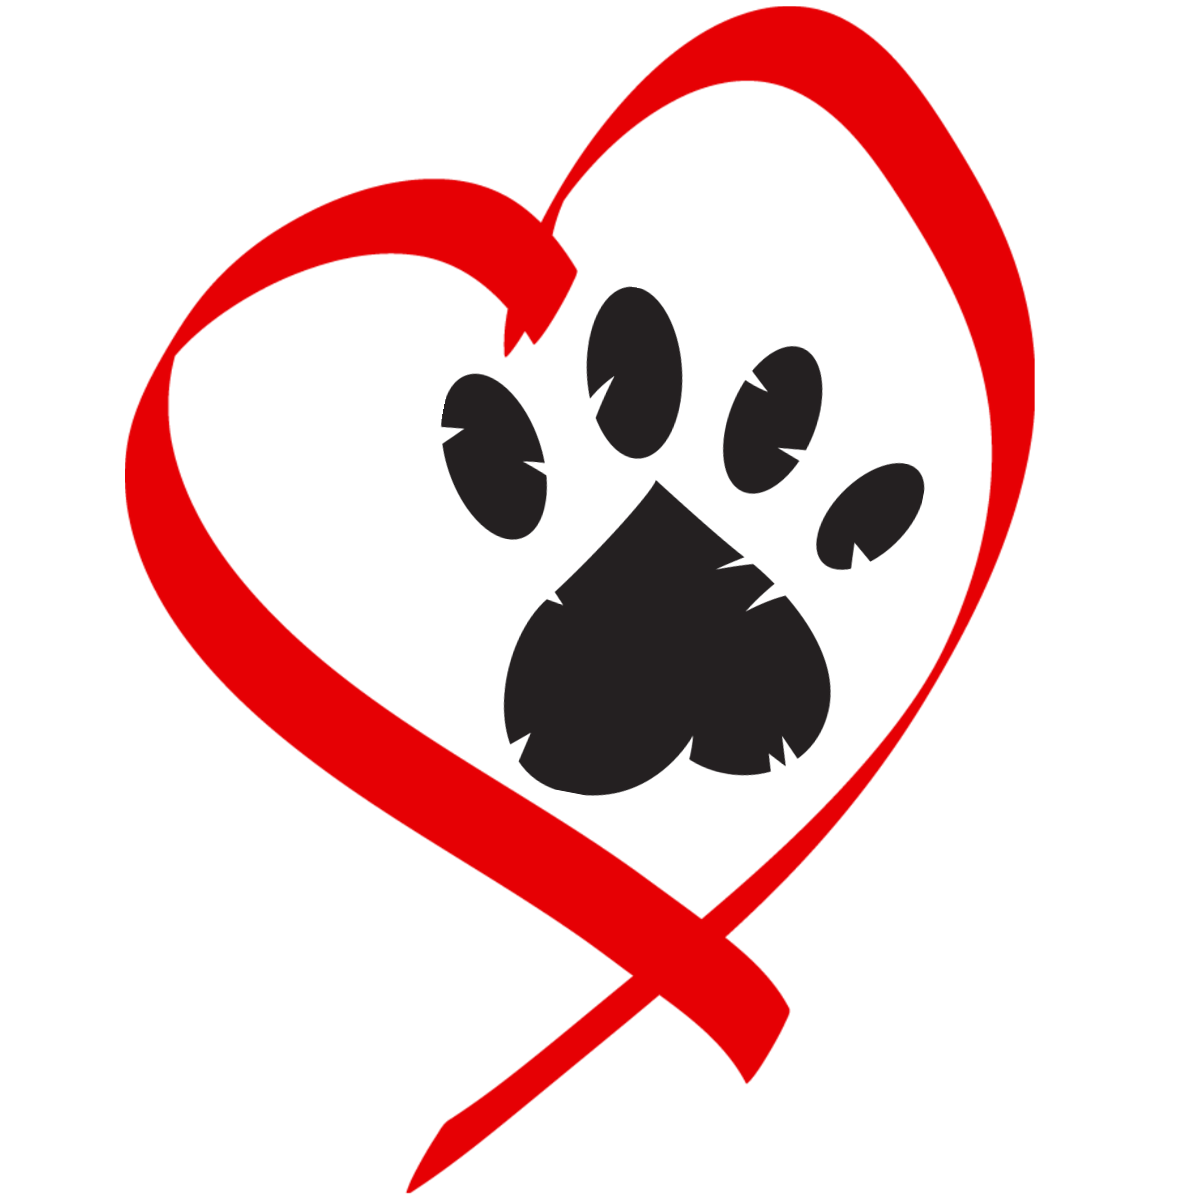 Paw gogrrlz logo idea. Pet clipart heart